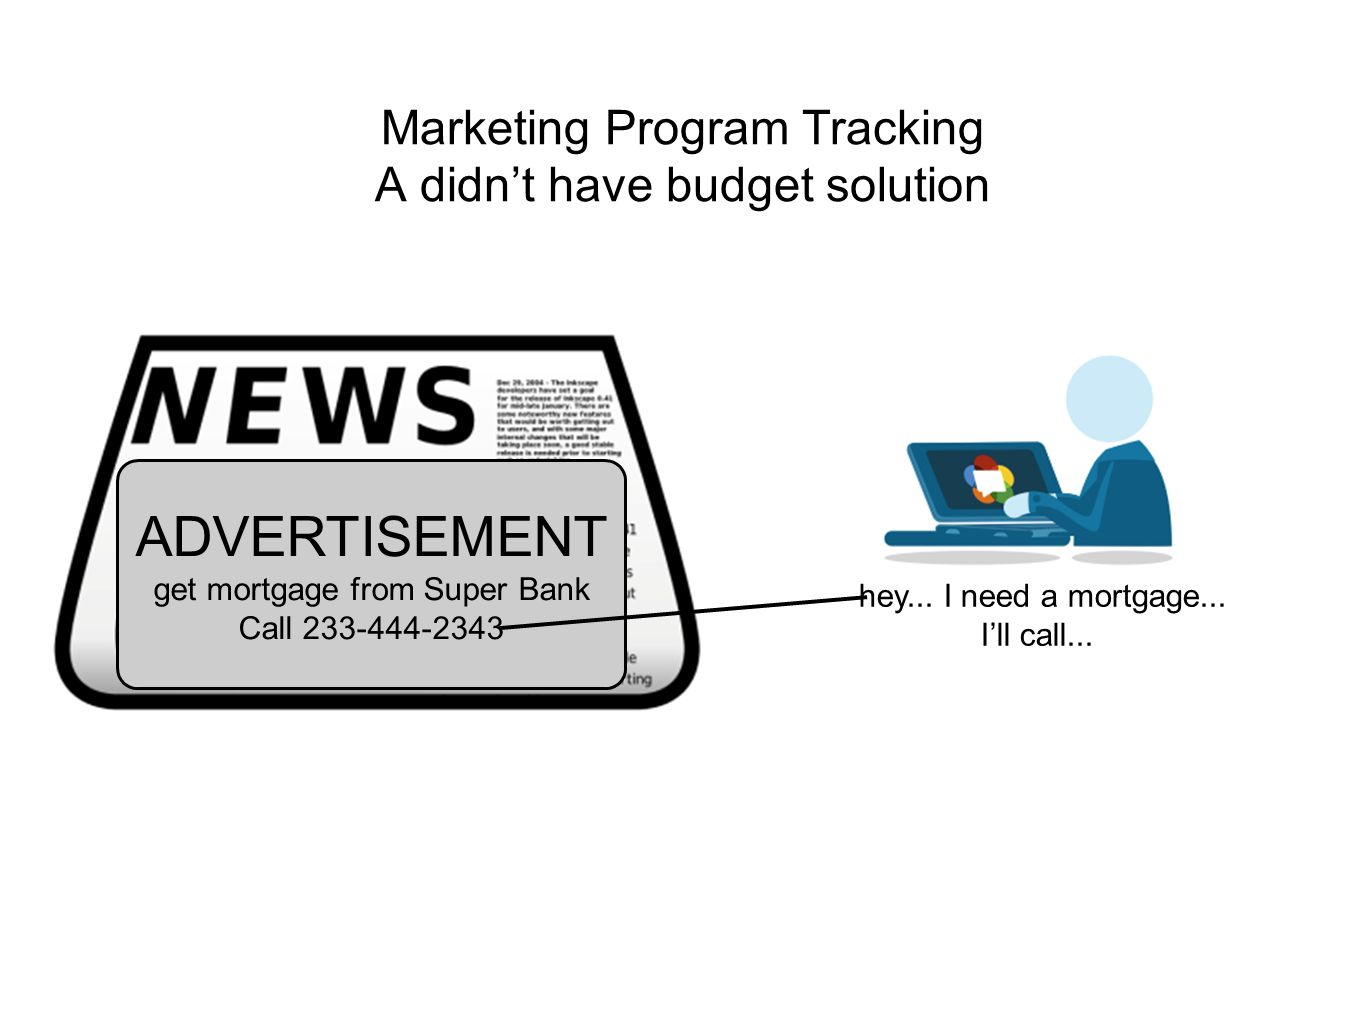 Marketing Program Tracking A didn't have budget solution